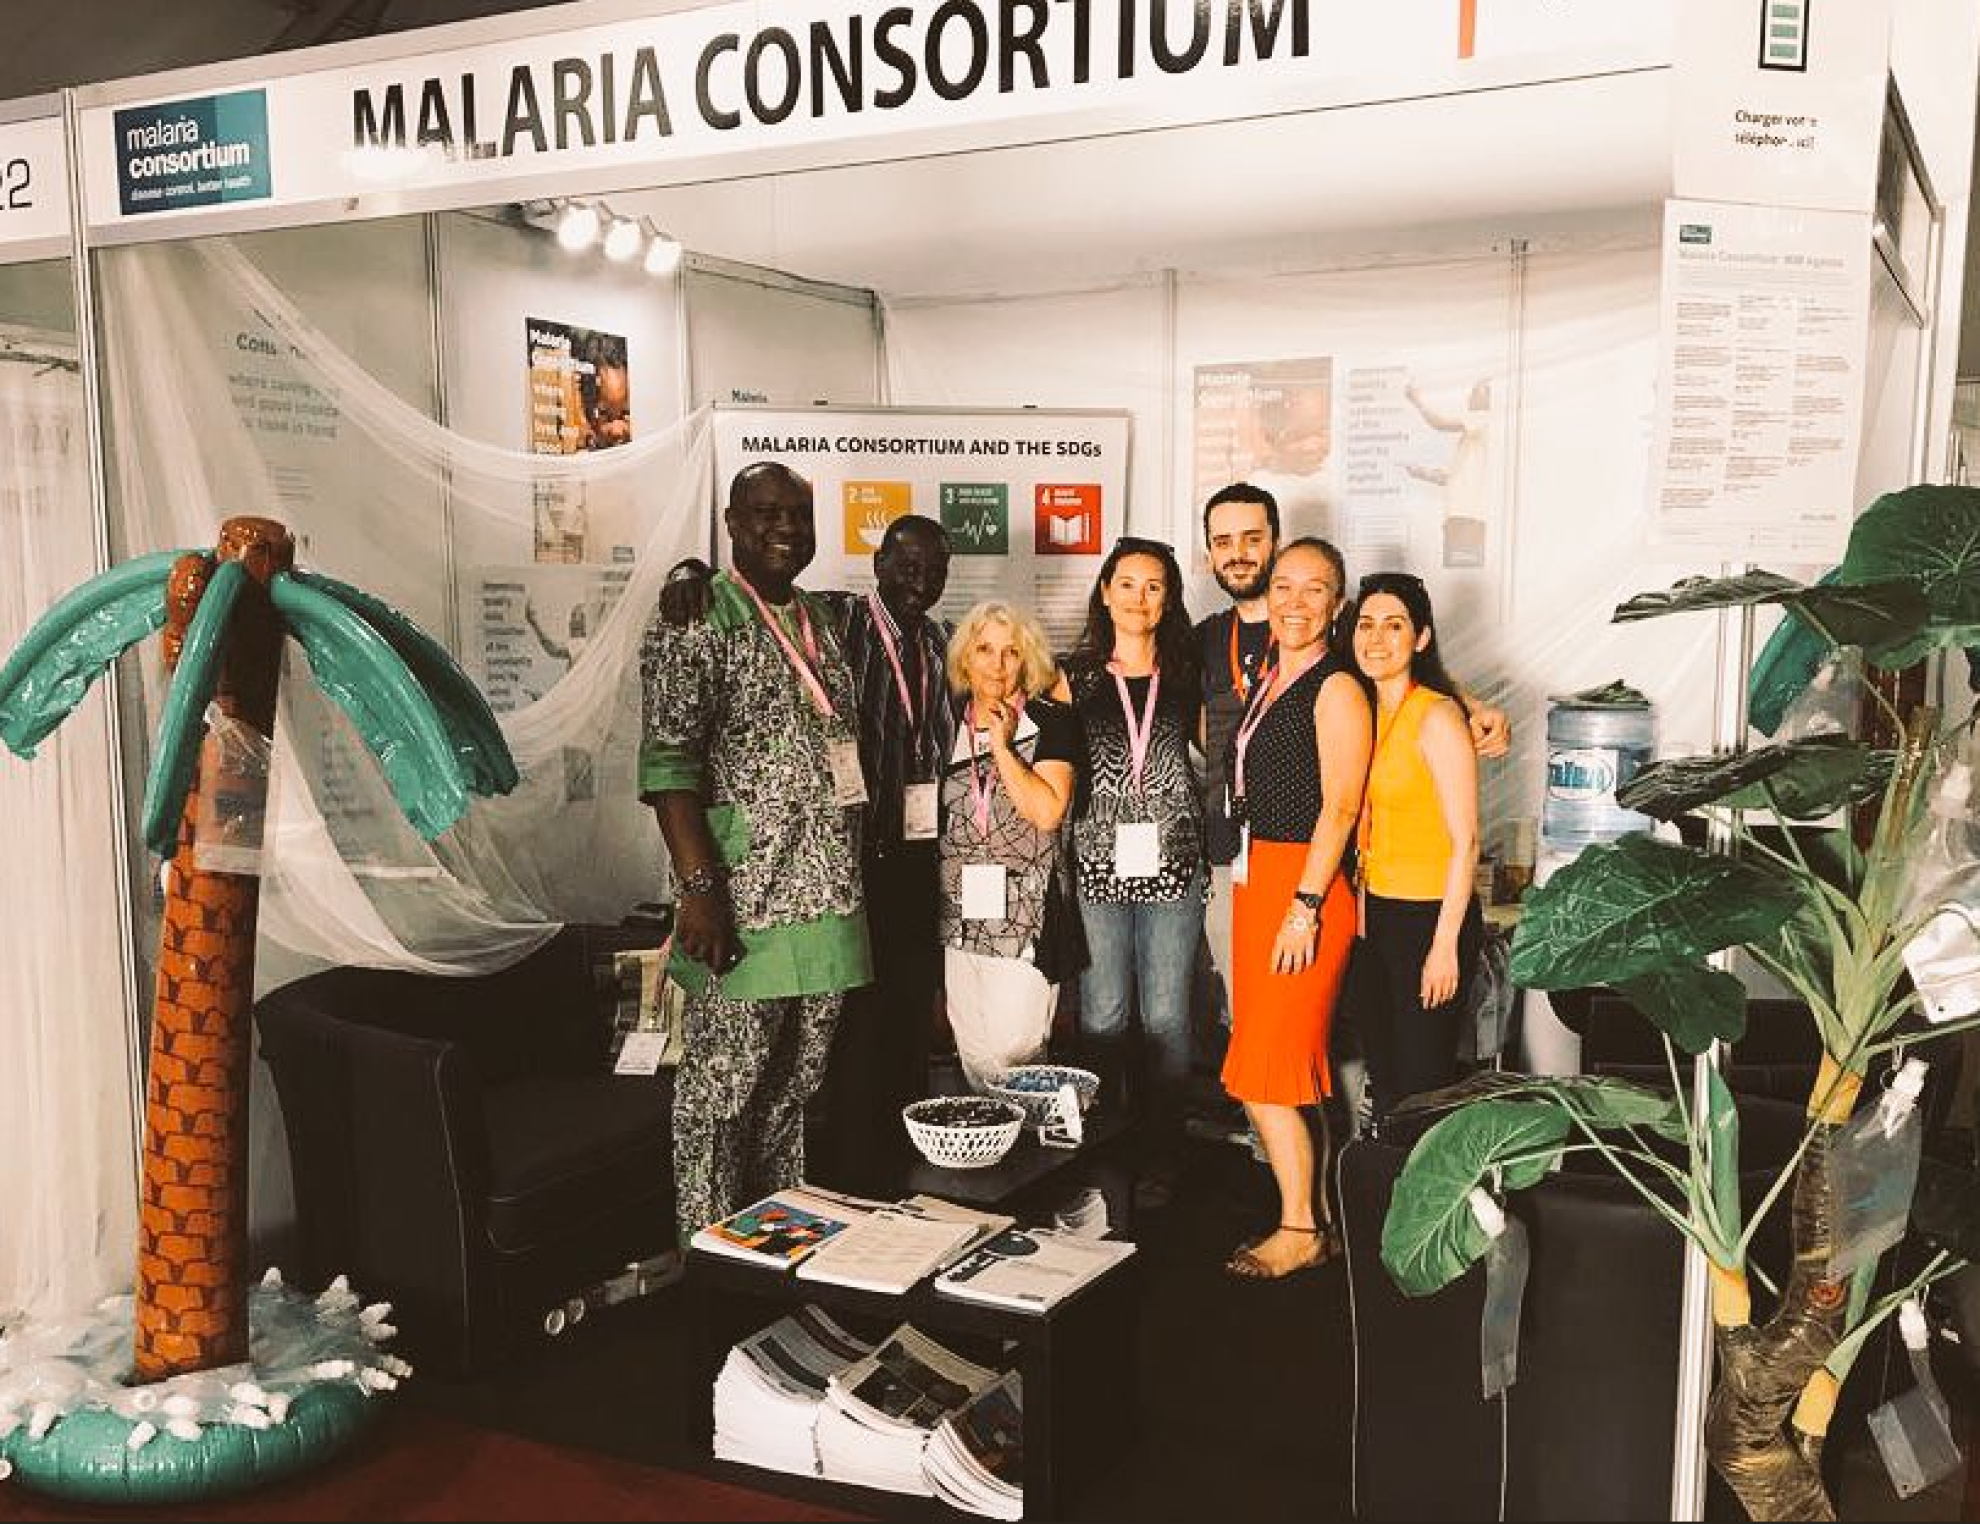 Latest News Malaria consortium at mim fighting malaria with a shared voice